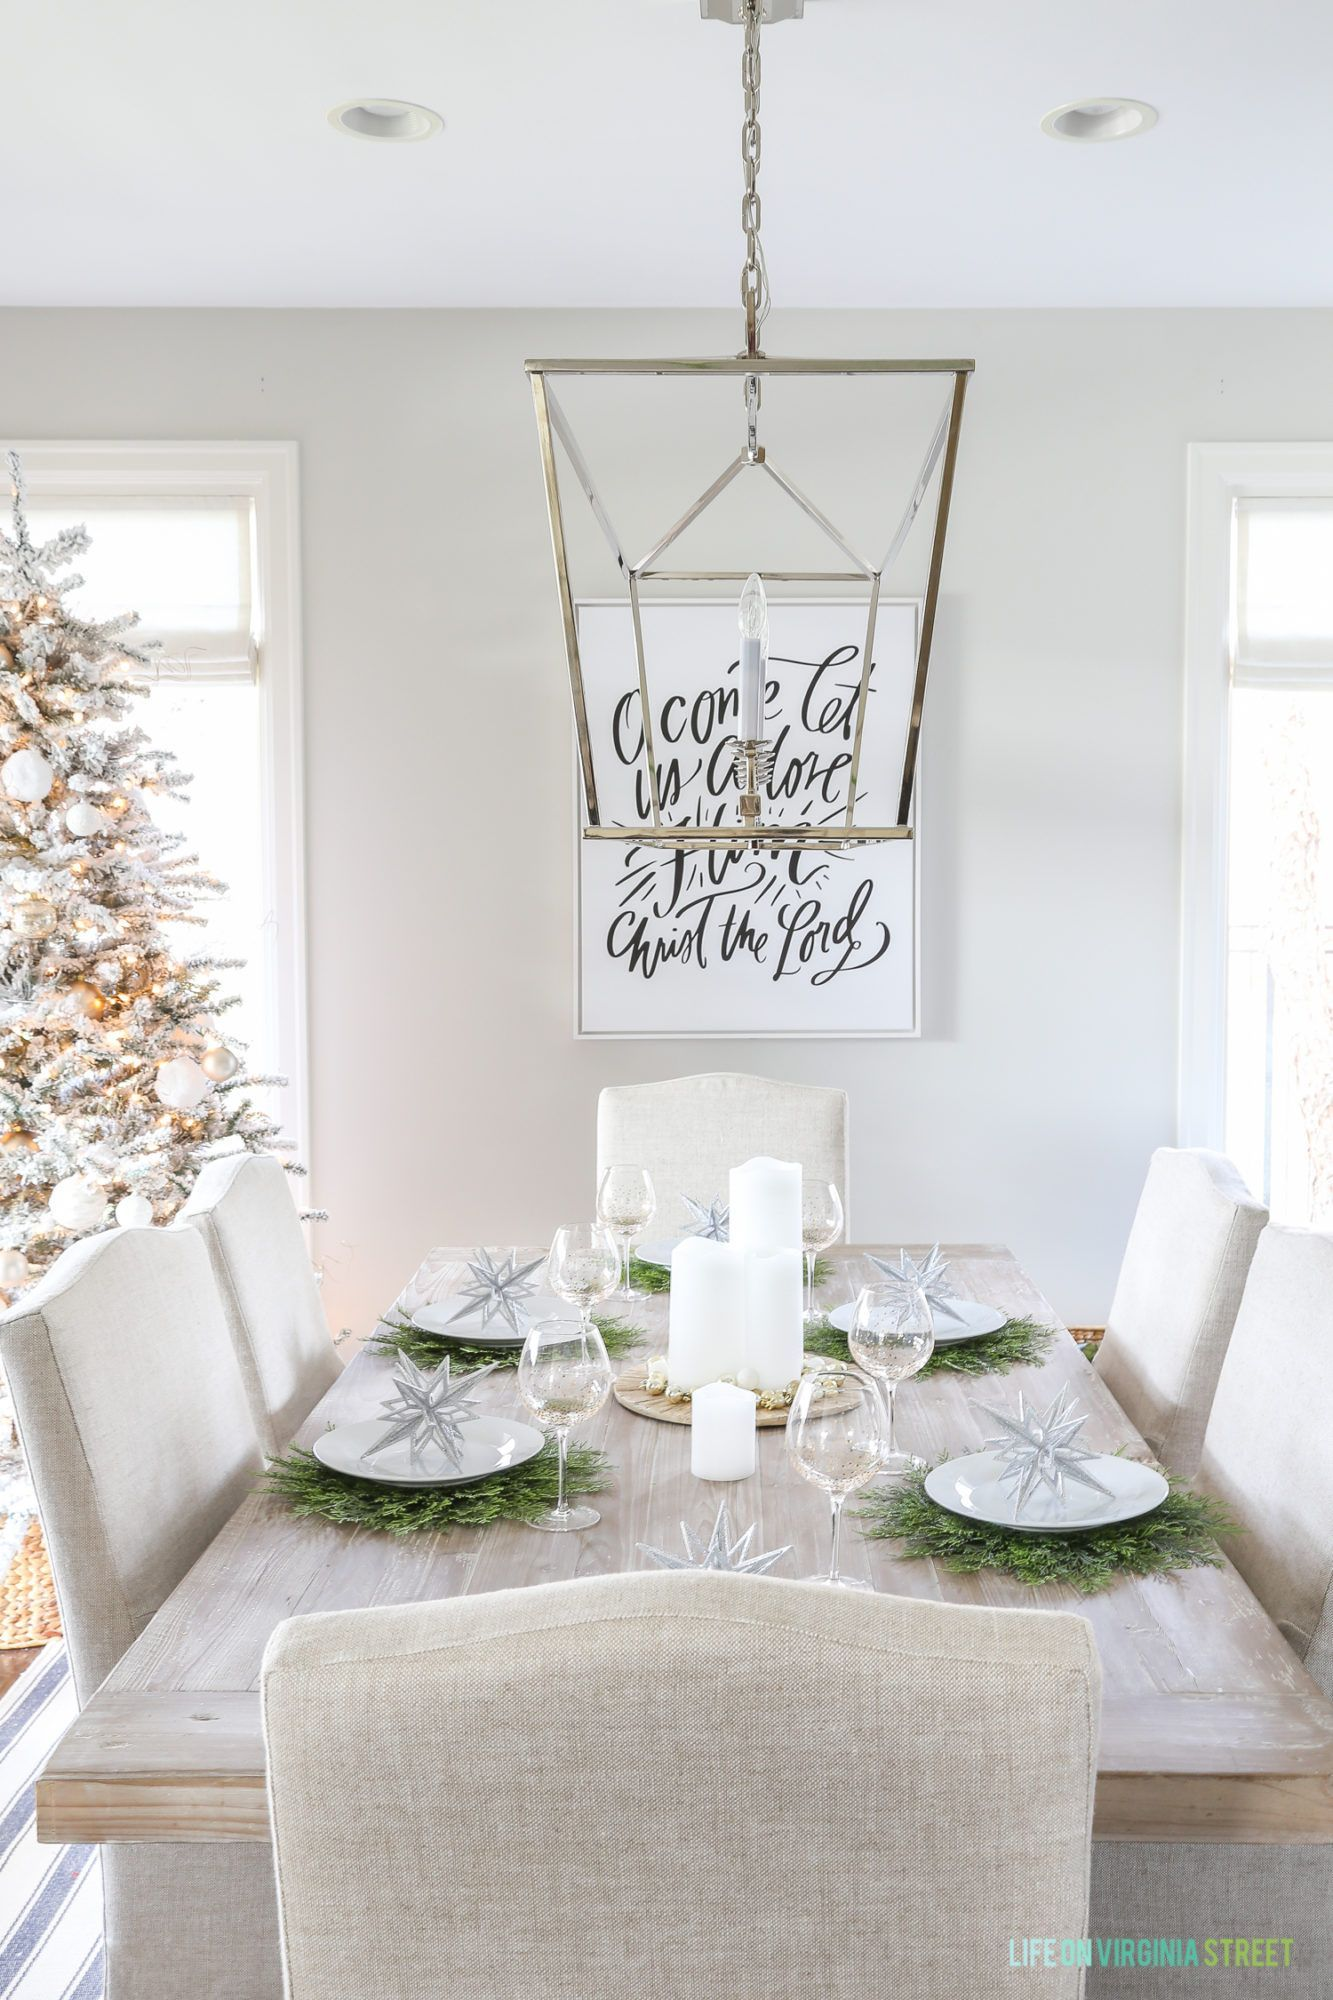 This Dining Room Wall Decor Gives a Whole New Meaning to Family Tree ...